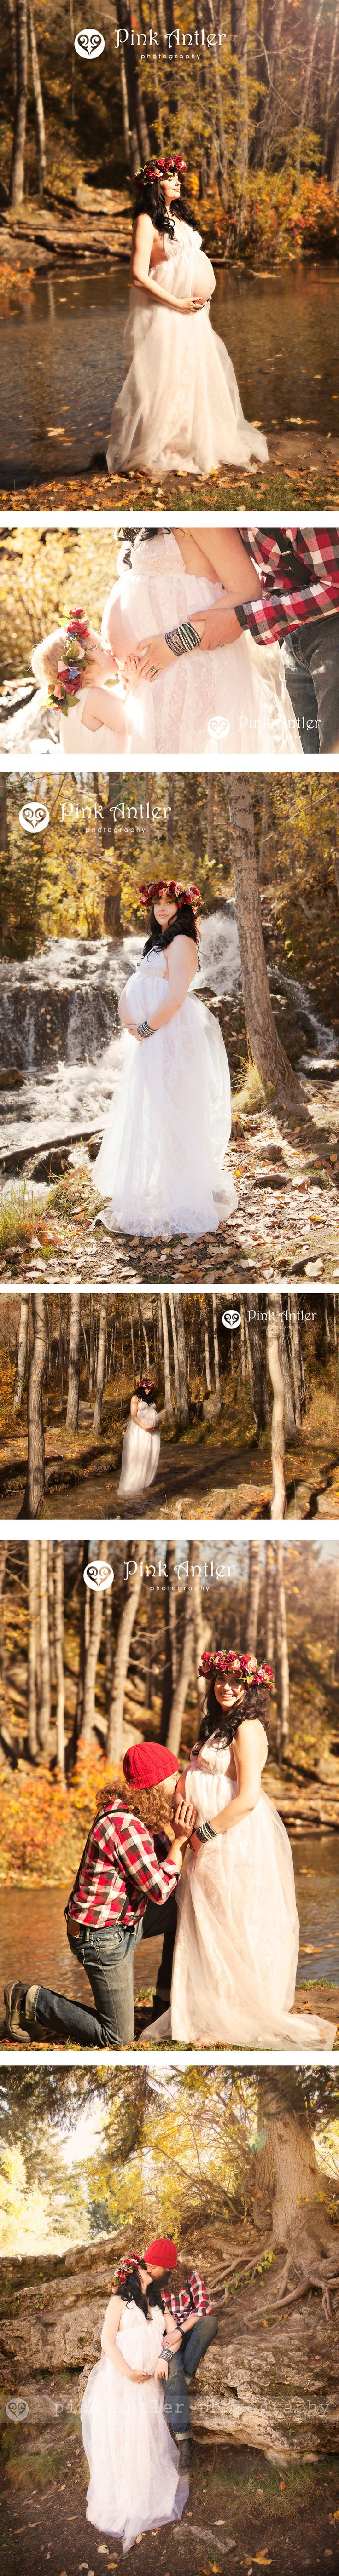 Beautiful Fall Maternity Session of an expecting goddess in the forest with waterfall.